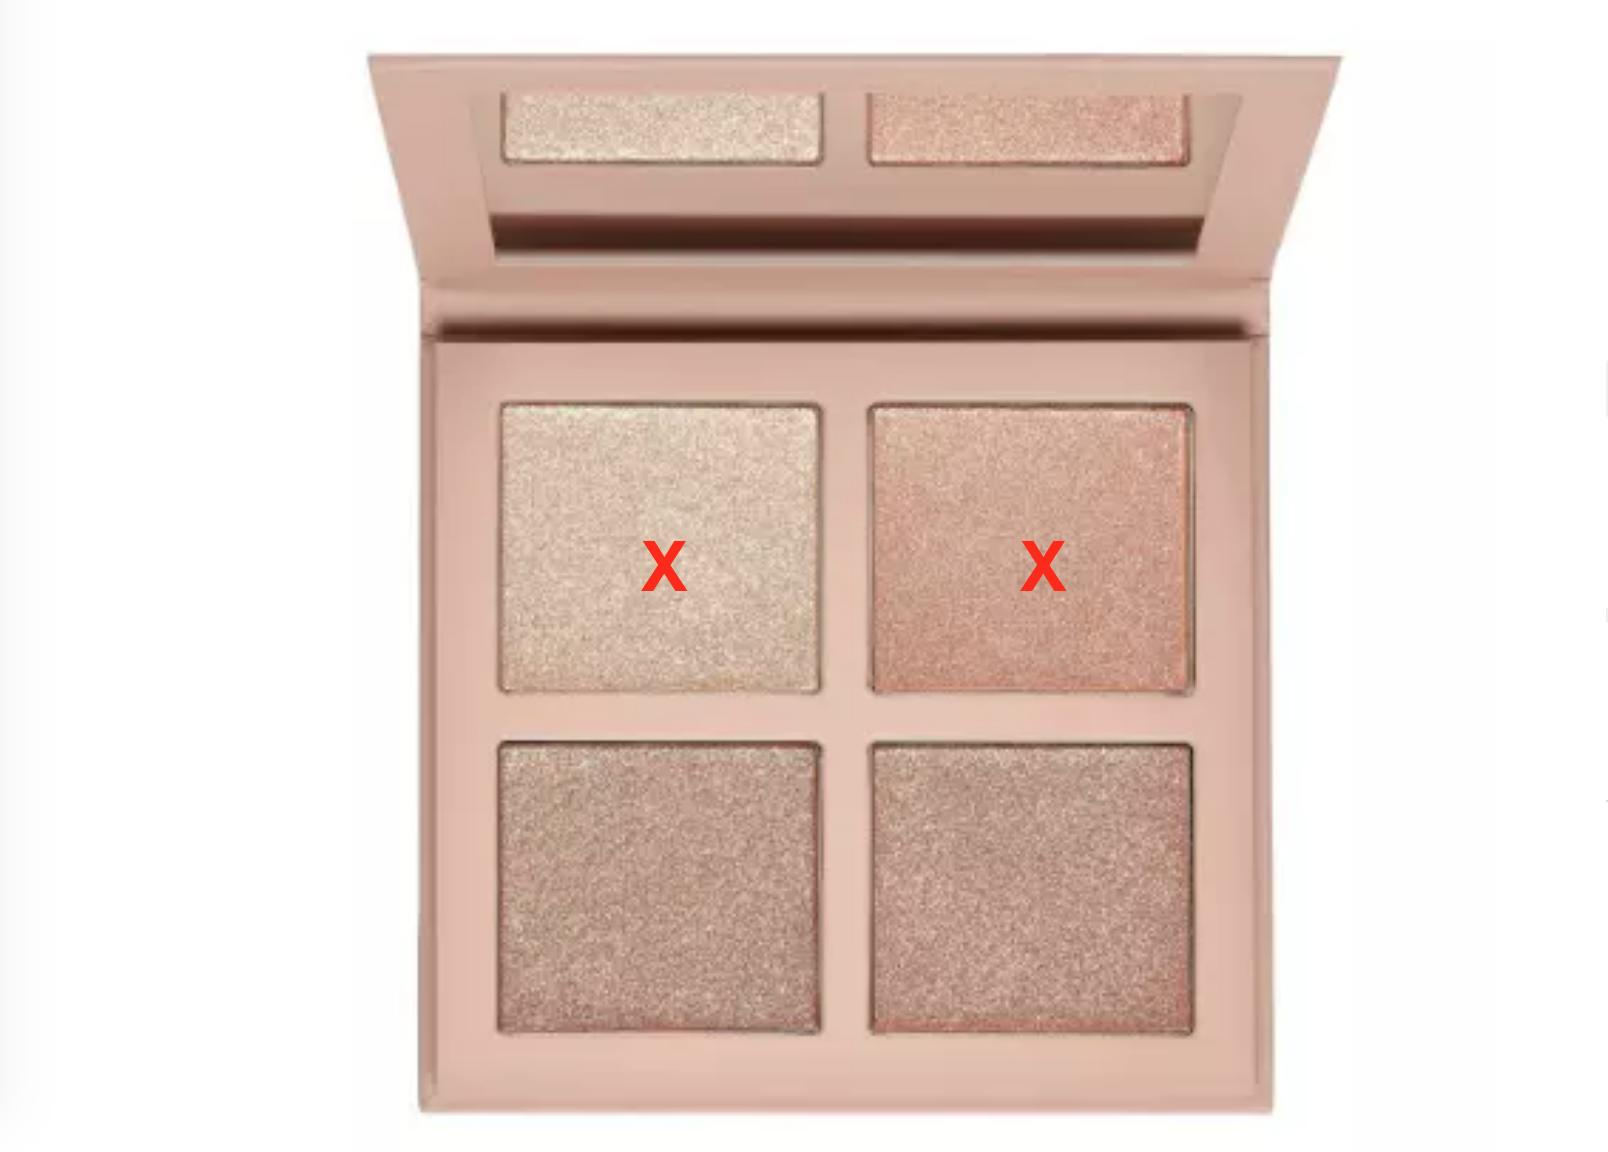 KKW Beauty Highlighter Palette 2 (without 2 colors)